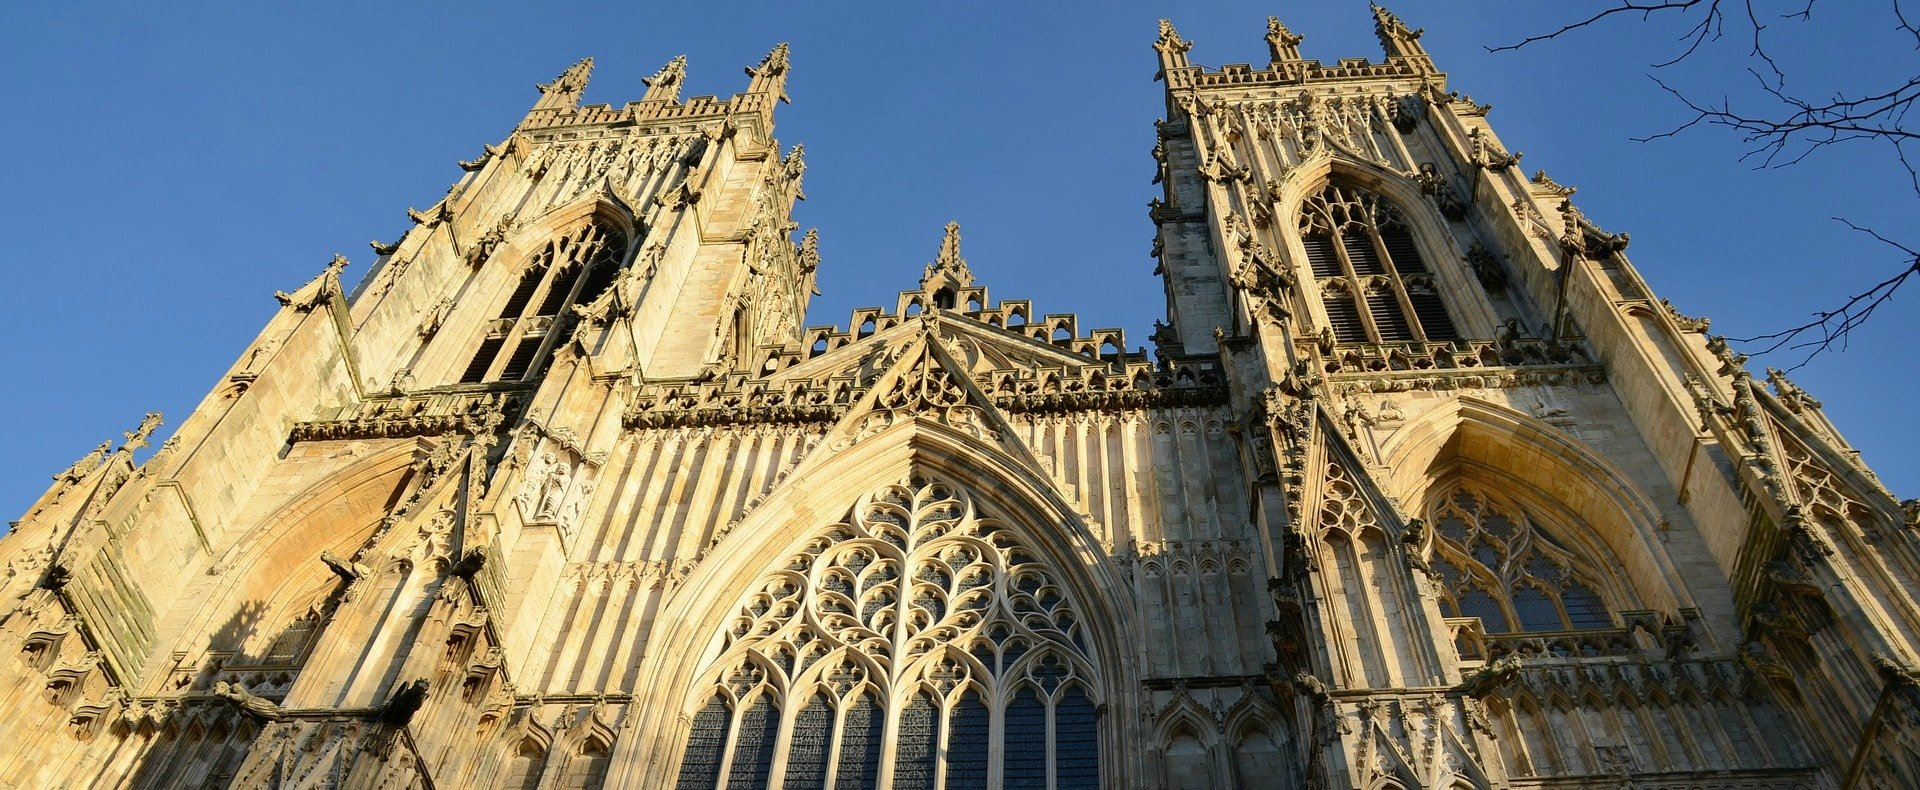 York Minster, York